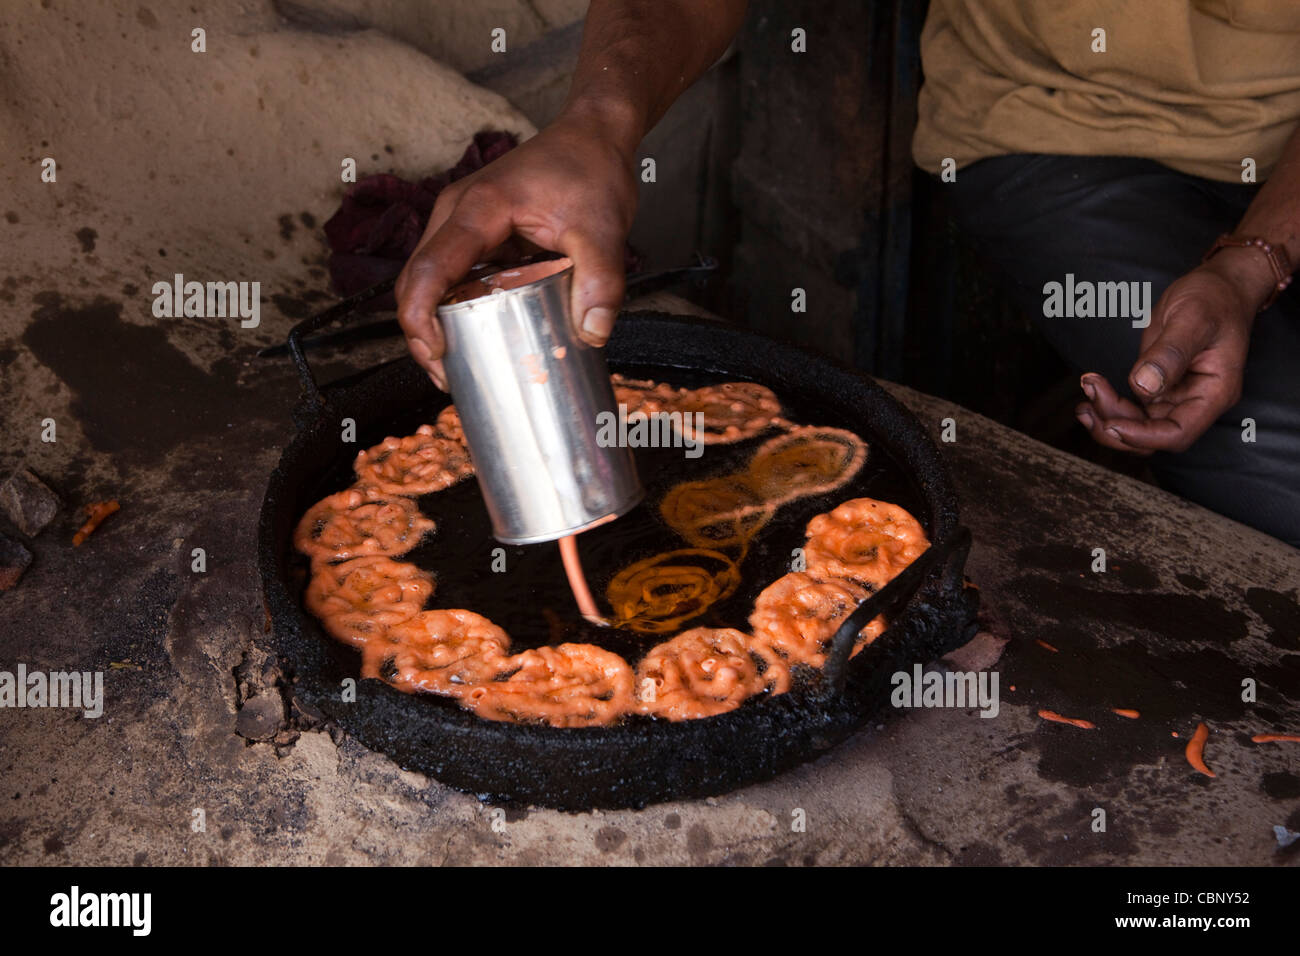 India, Manipur, Lairouching Hills, food, hands of man cooking jelabi in small roadside cafe - Stock Image